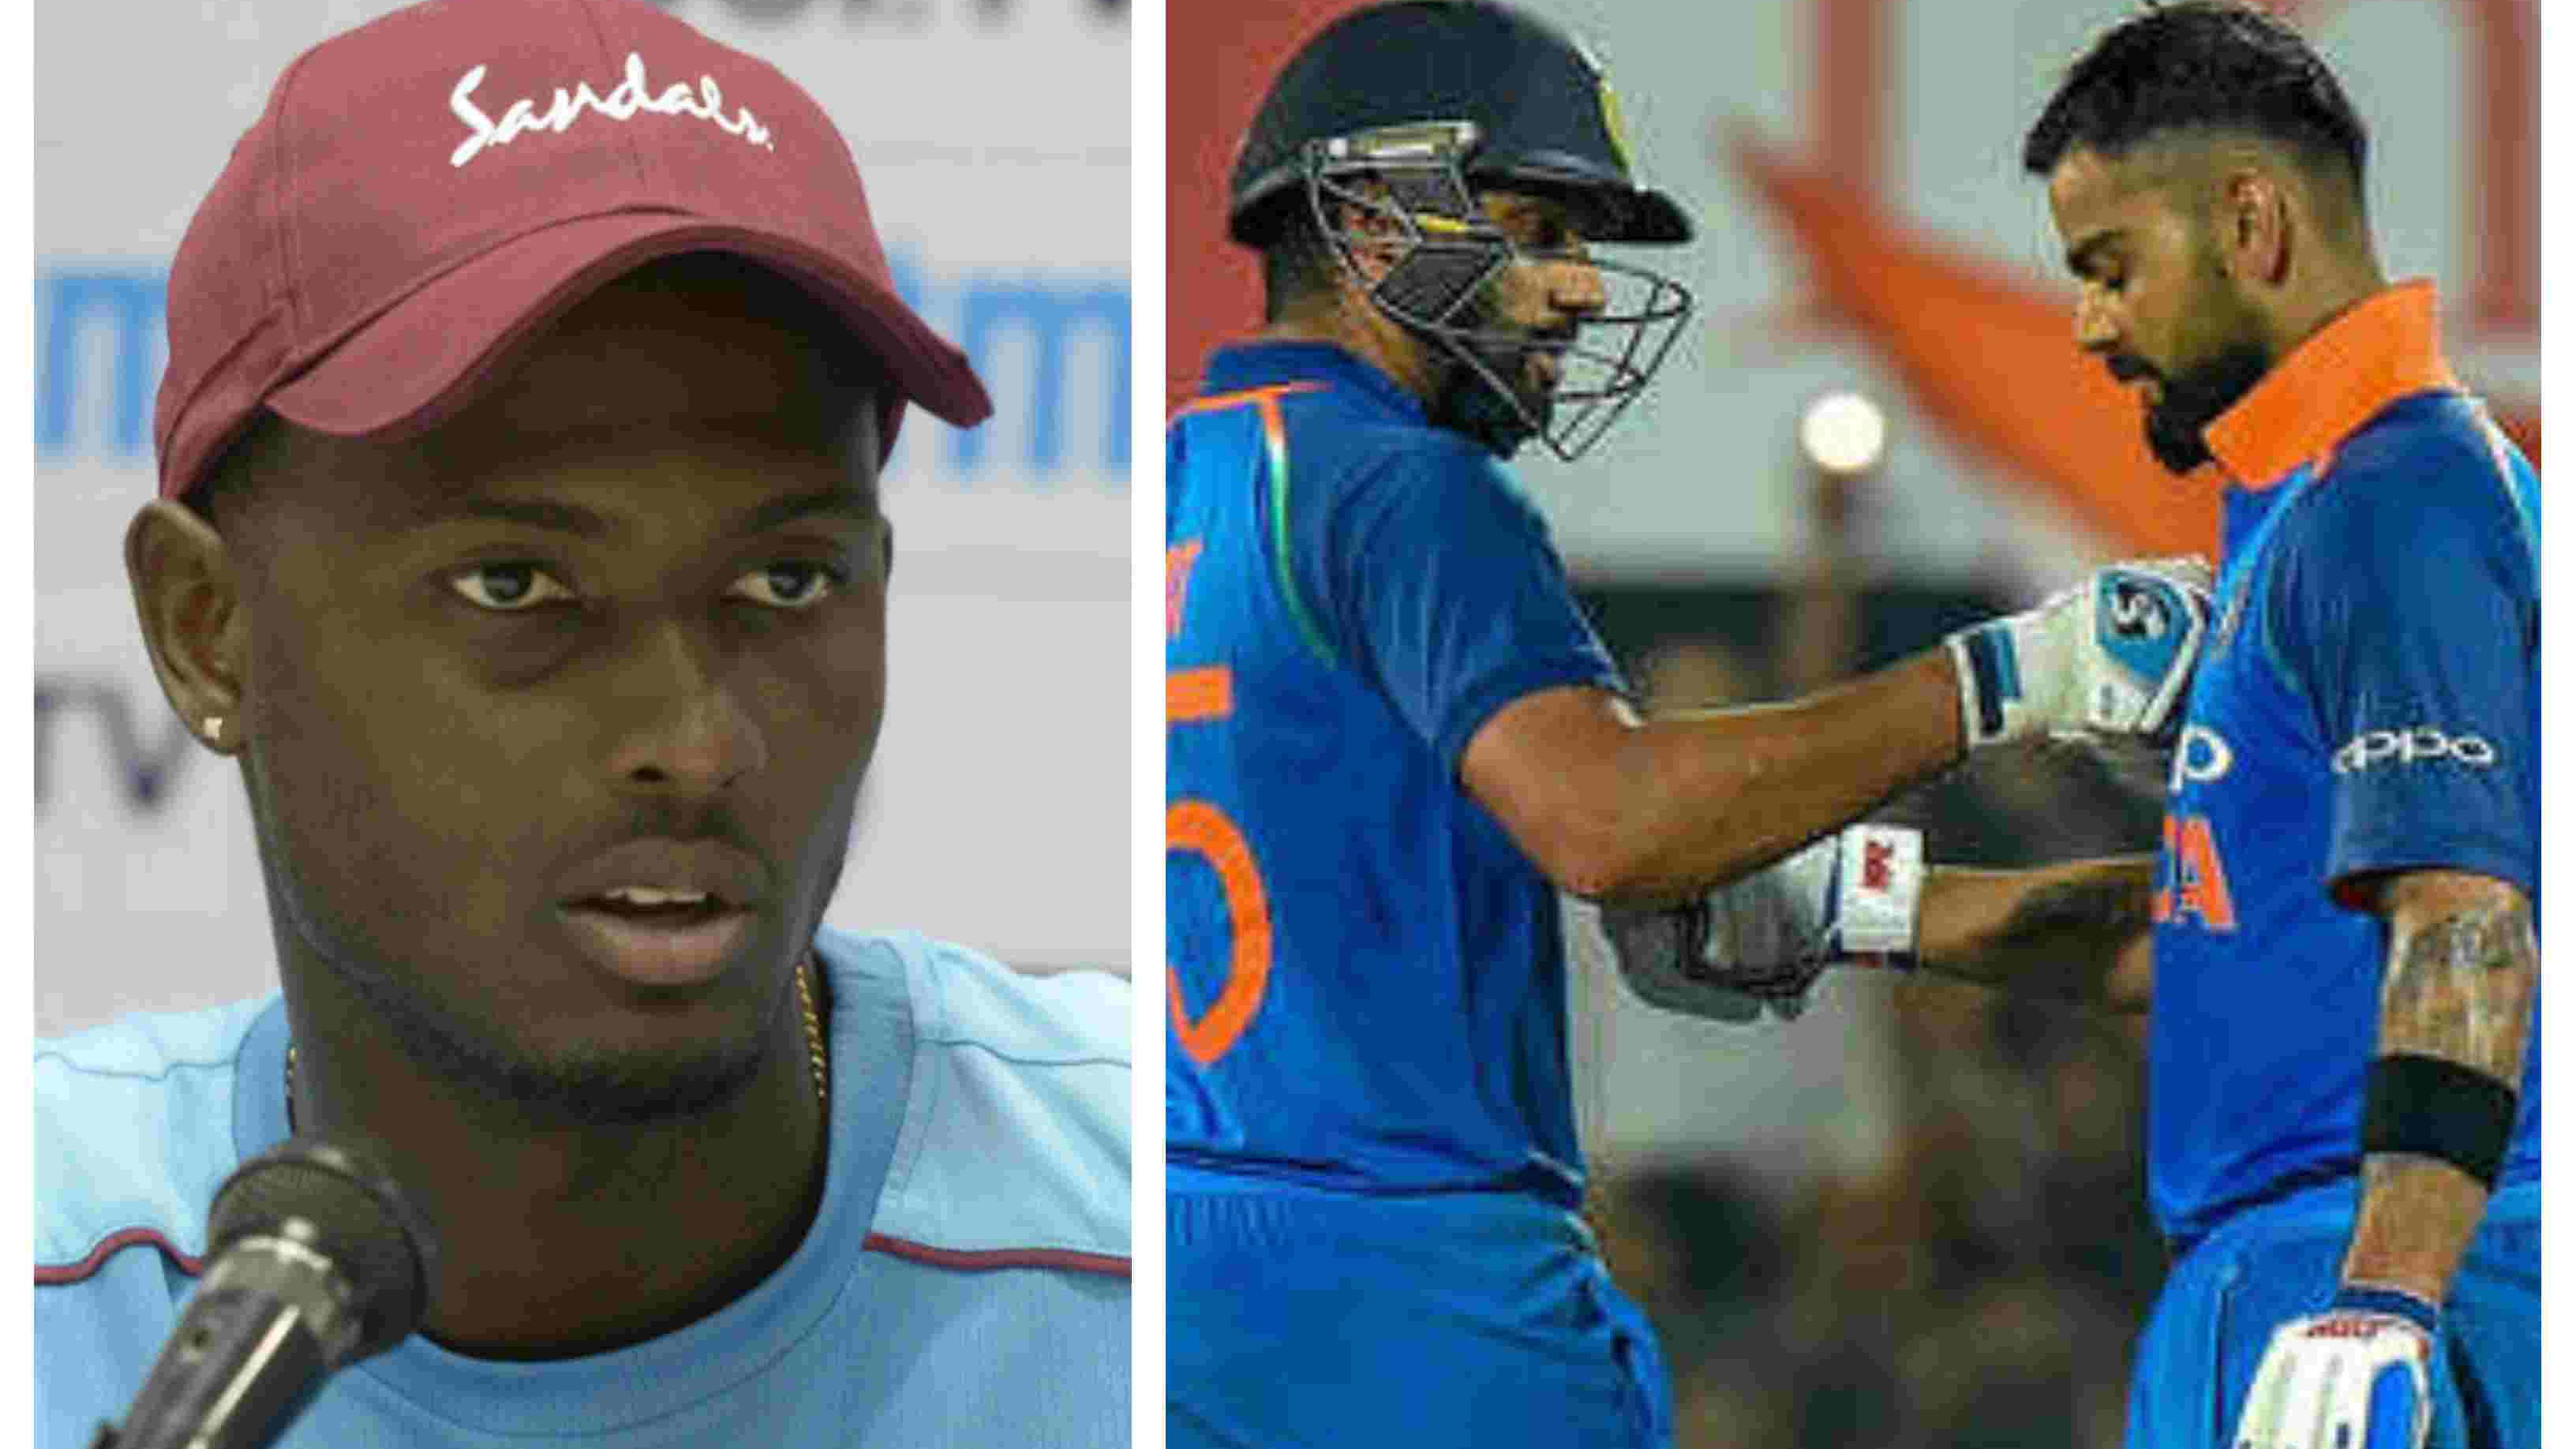 IND v WI 2018: You never know what's par score against India, says Jason Holder